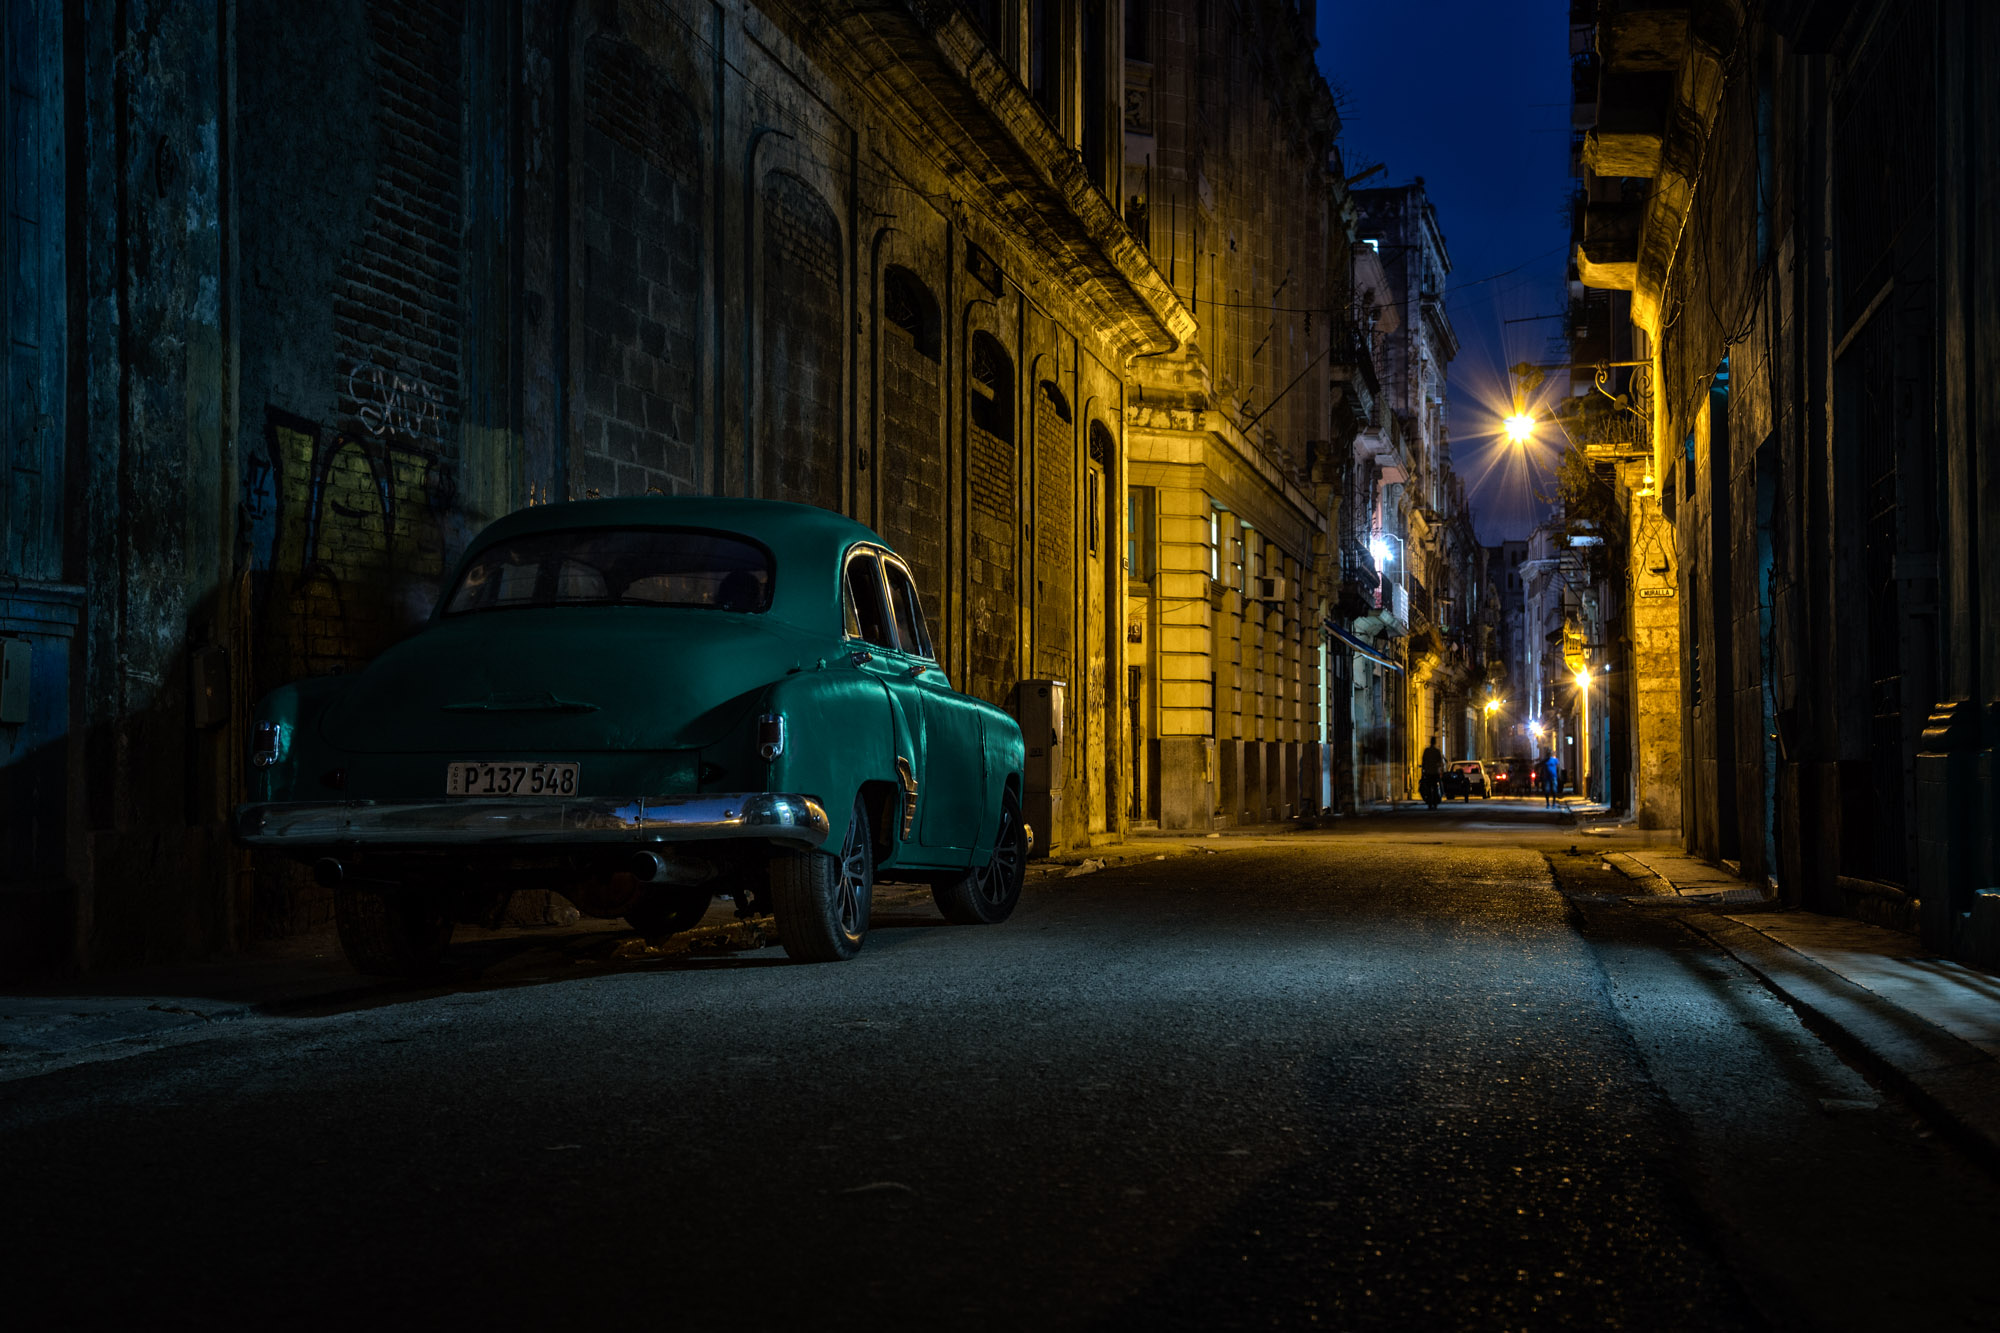 long exposure night photography of old Havana with a parked classic vintage America car in Cuba